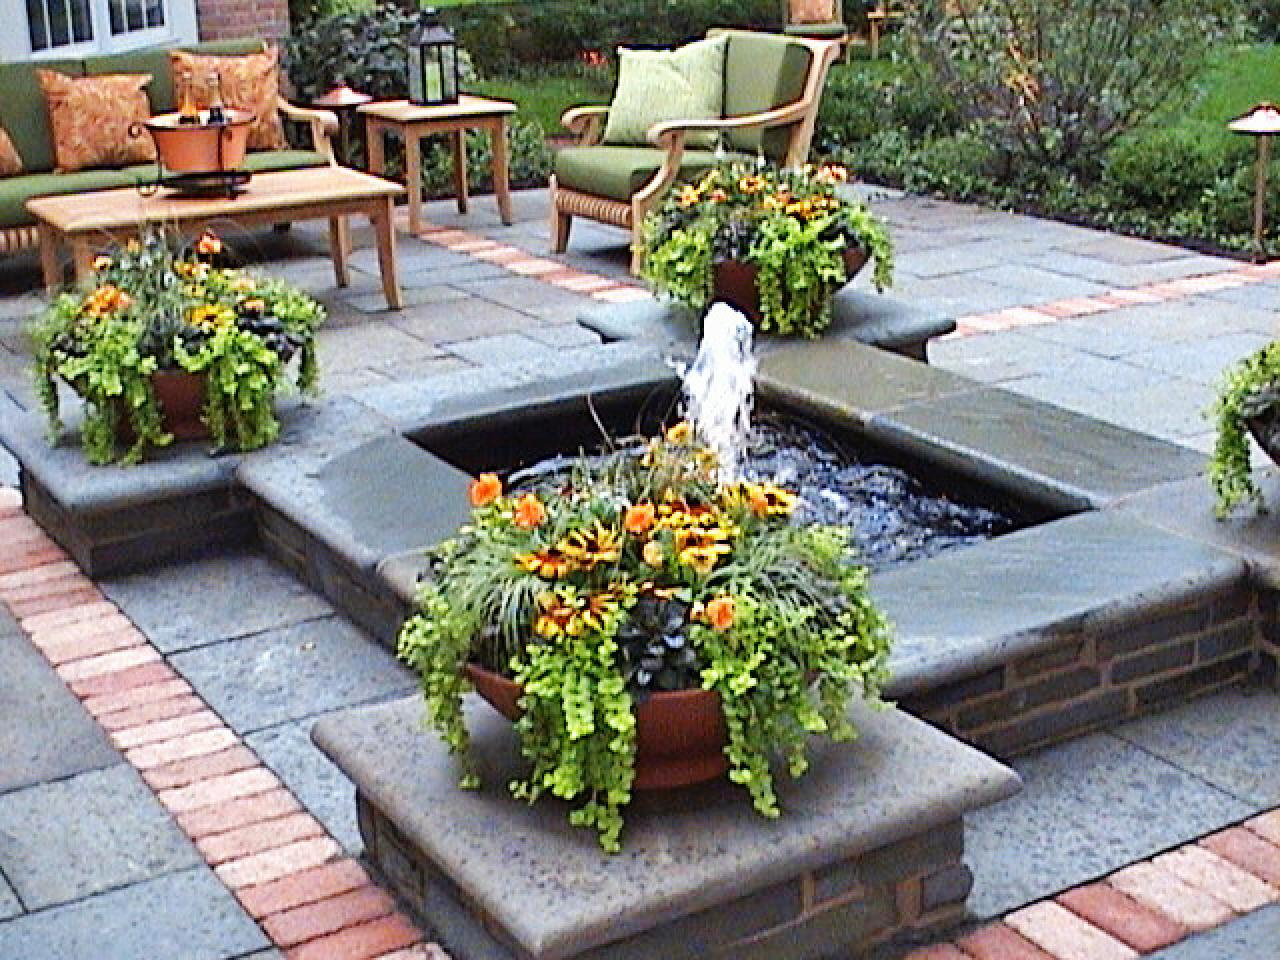 Cool ponds pools and fountains for the backyard diy for Pond with fountain